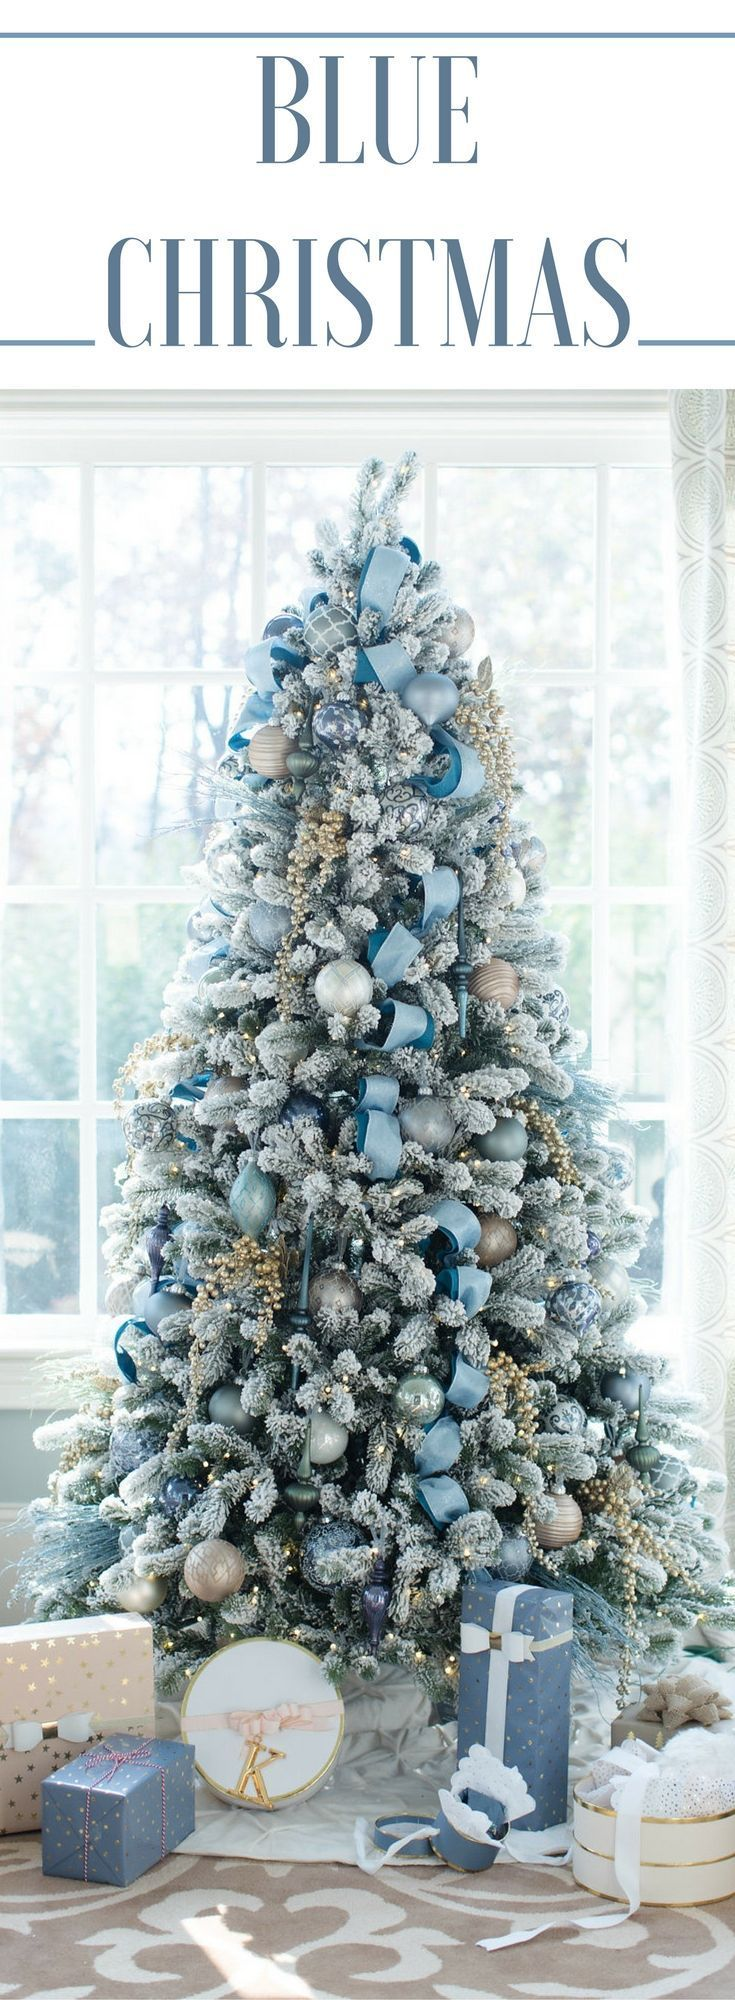 126 best Christmas Tree Decorating Ideas images on Pinterest ...